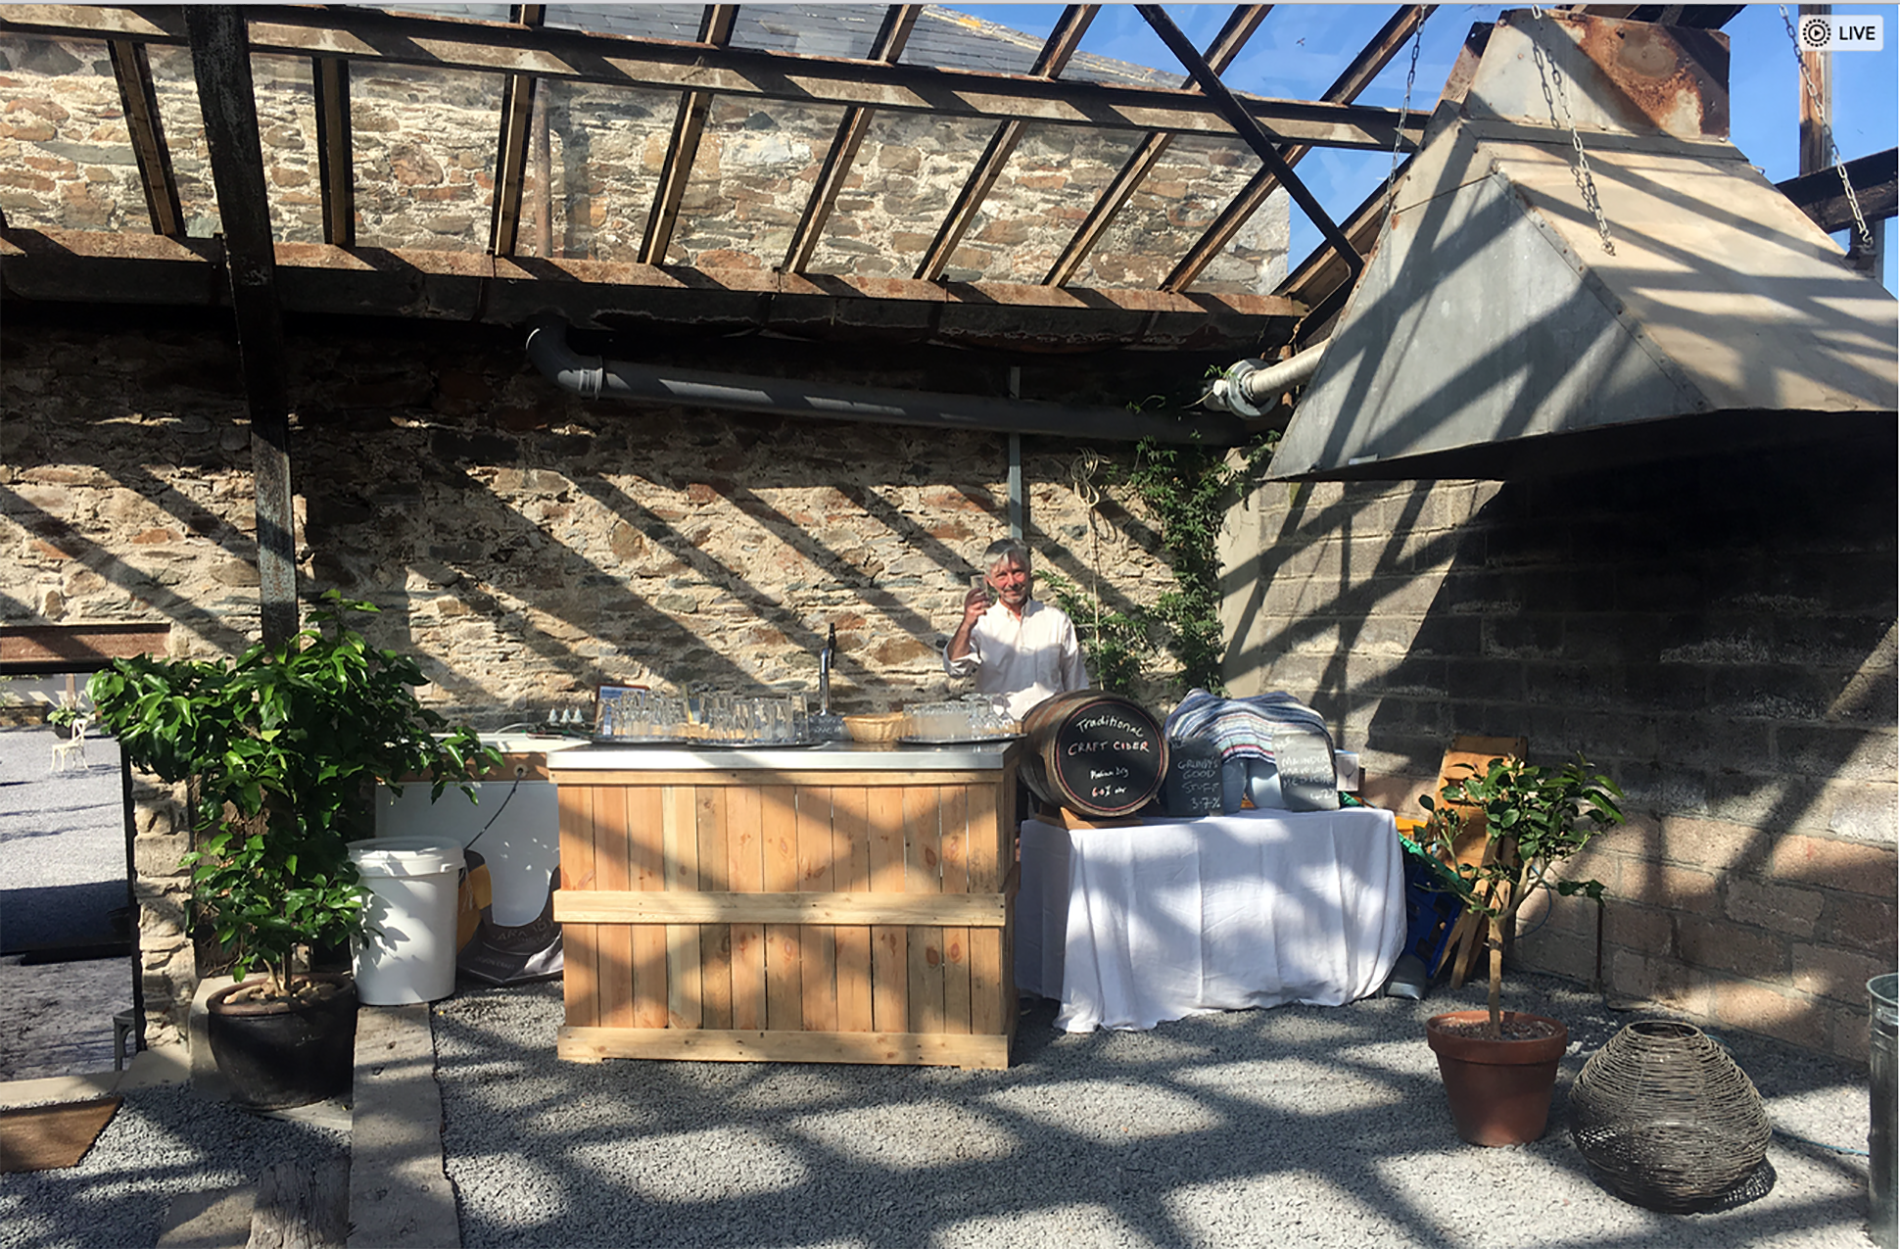 barnabys-brewhouse-outisde-events-wedding-june-2017